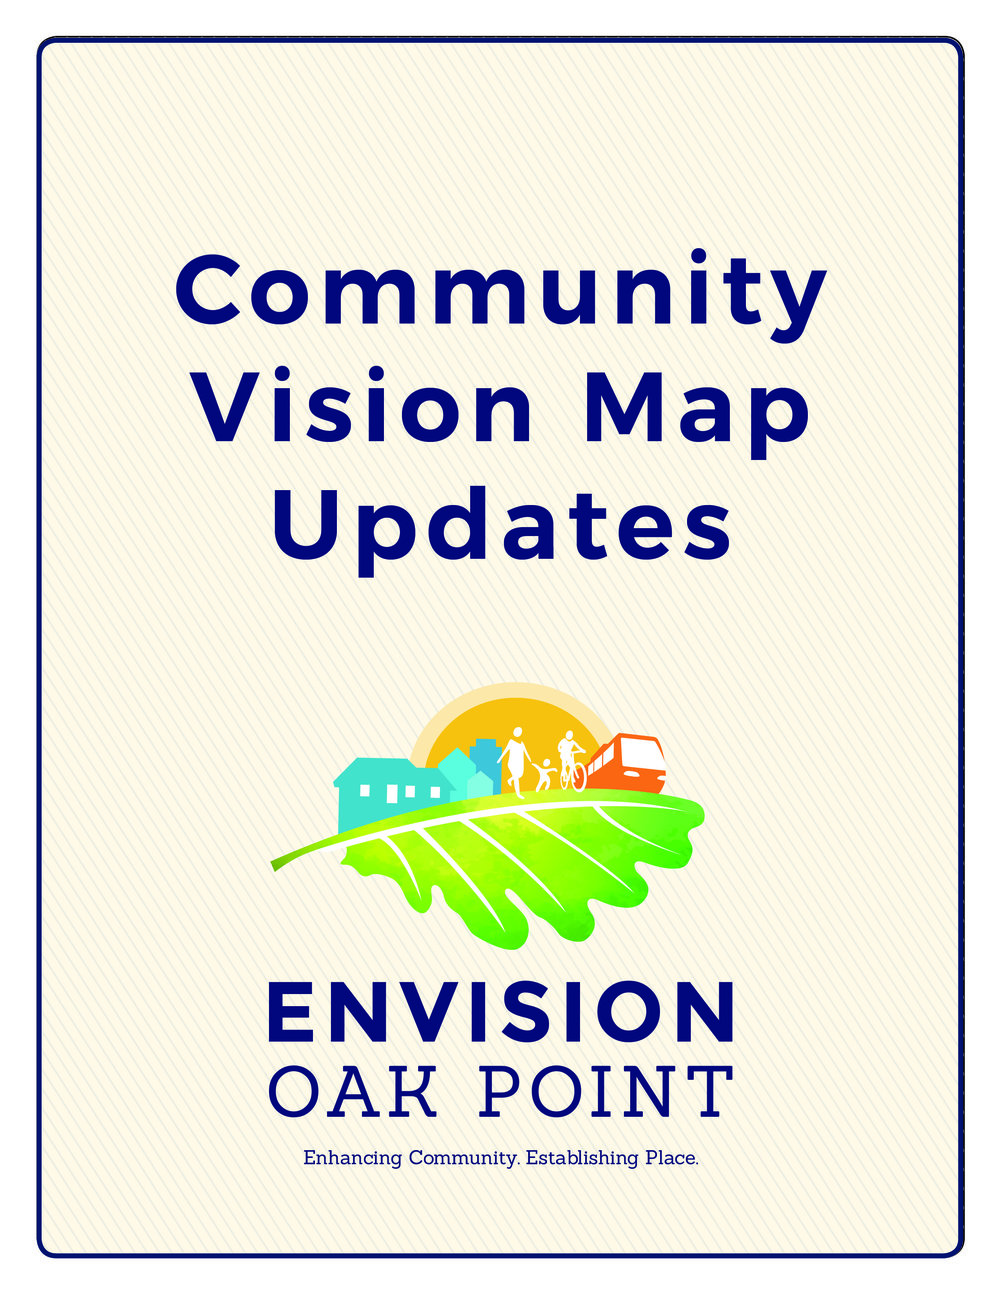 Community Vision Map Updates